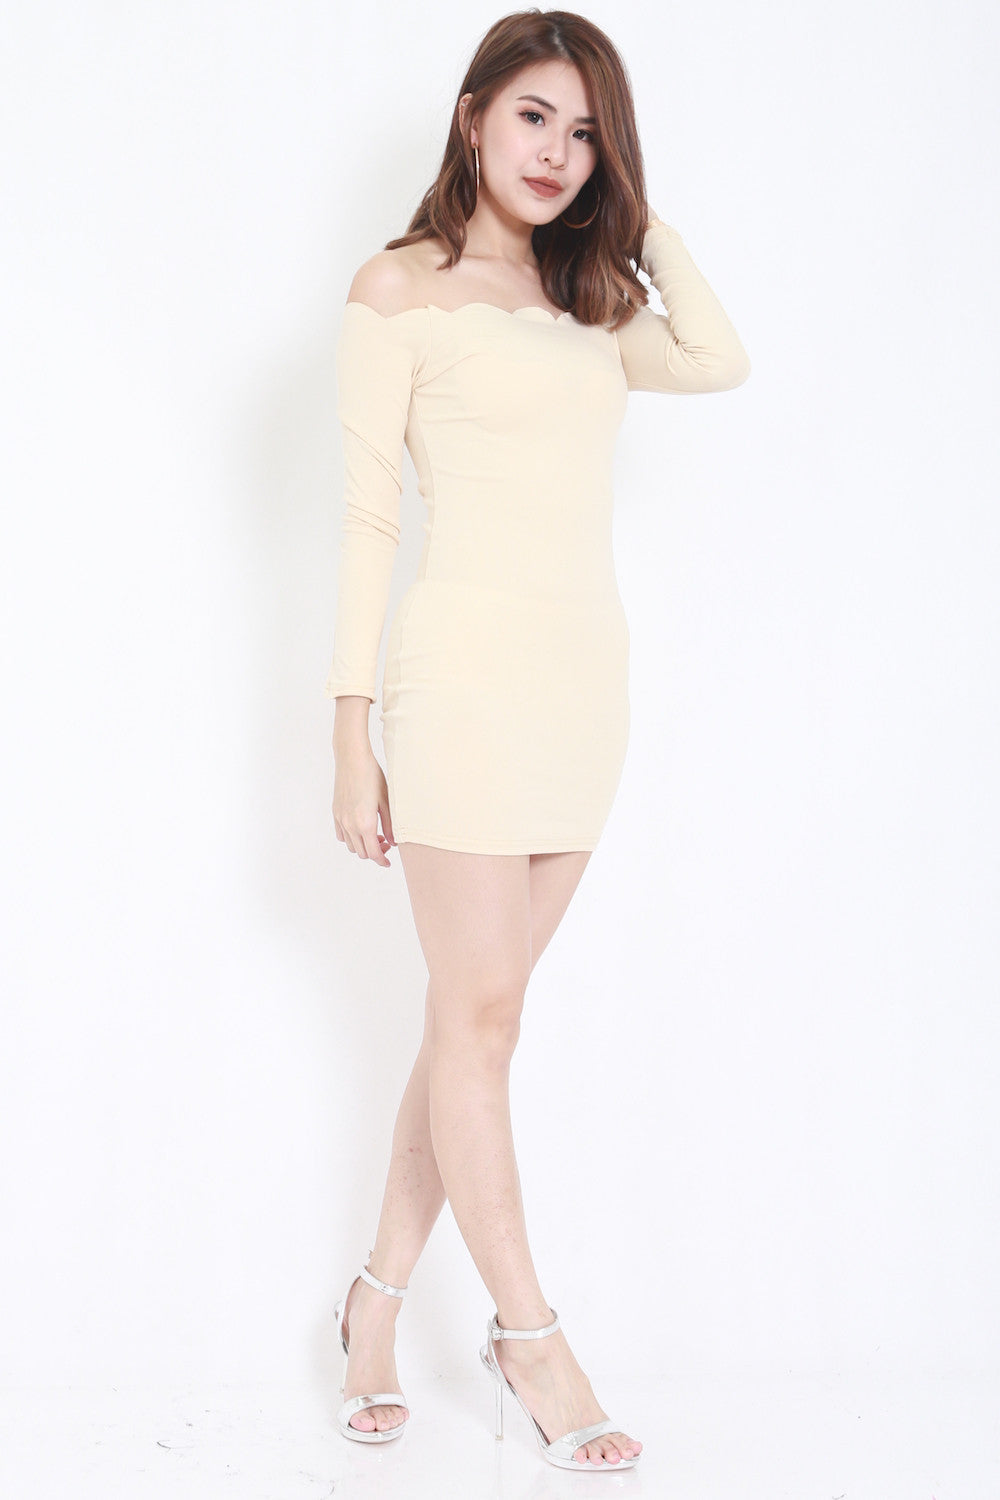 Ls- nude :1 7 LS Scallop Dress (Nude) - - 3